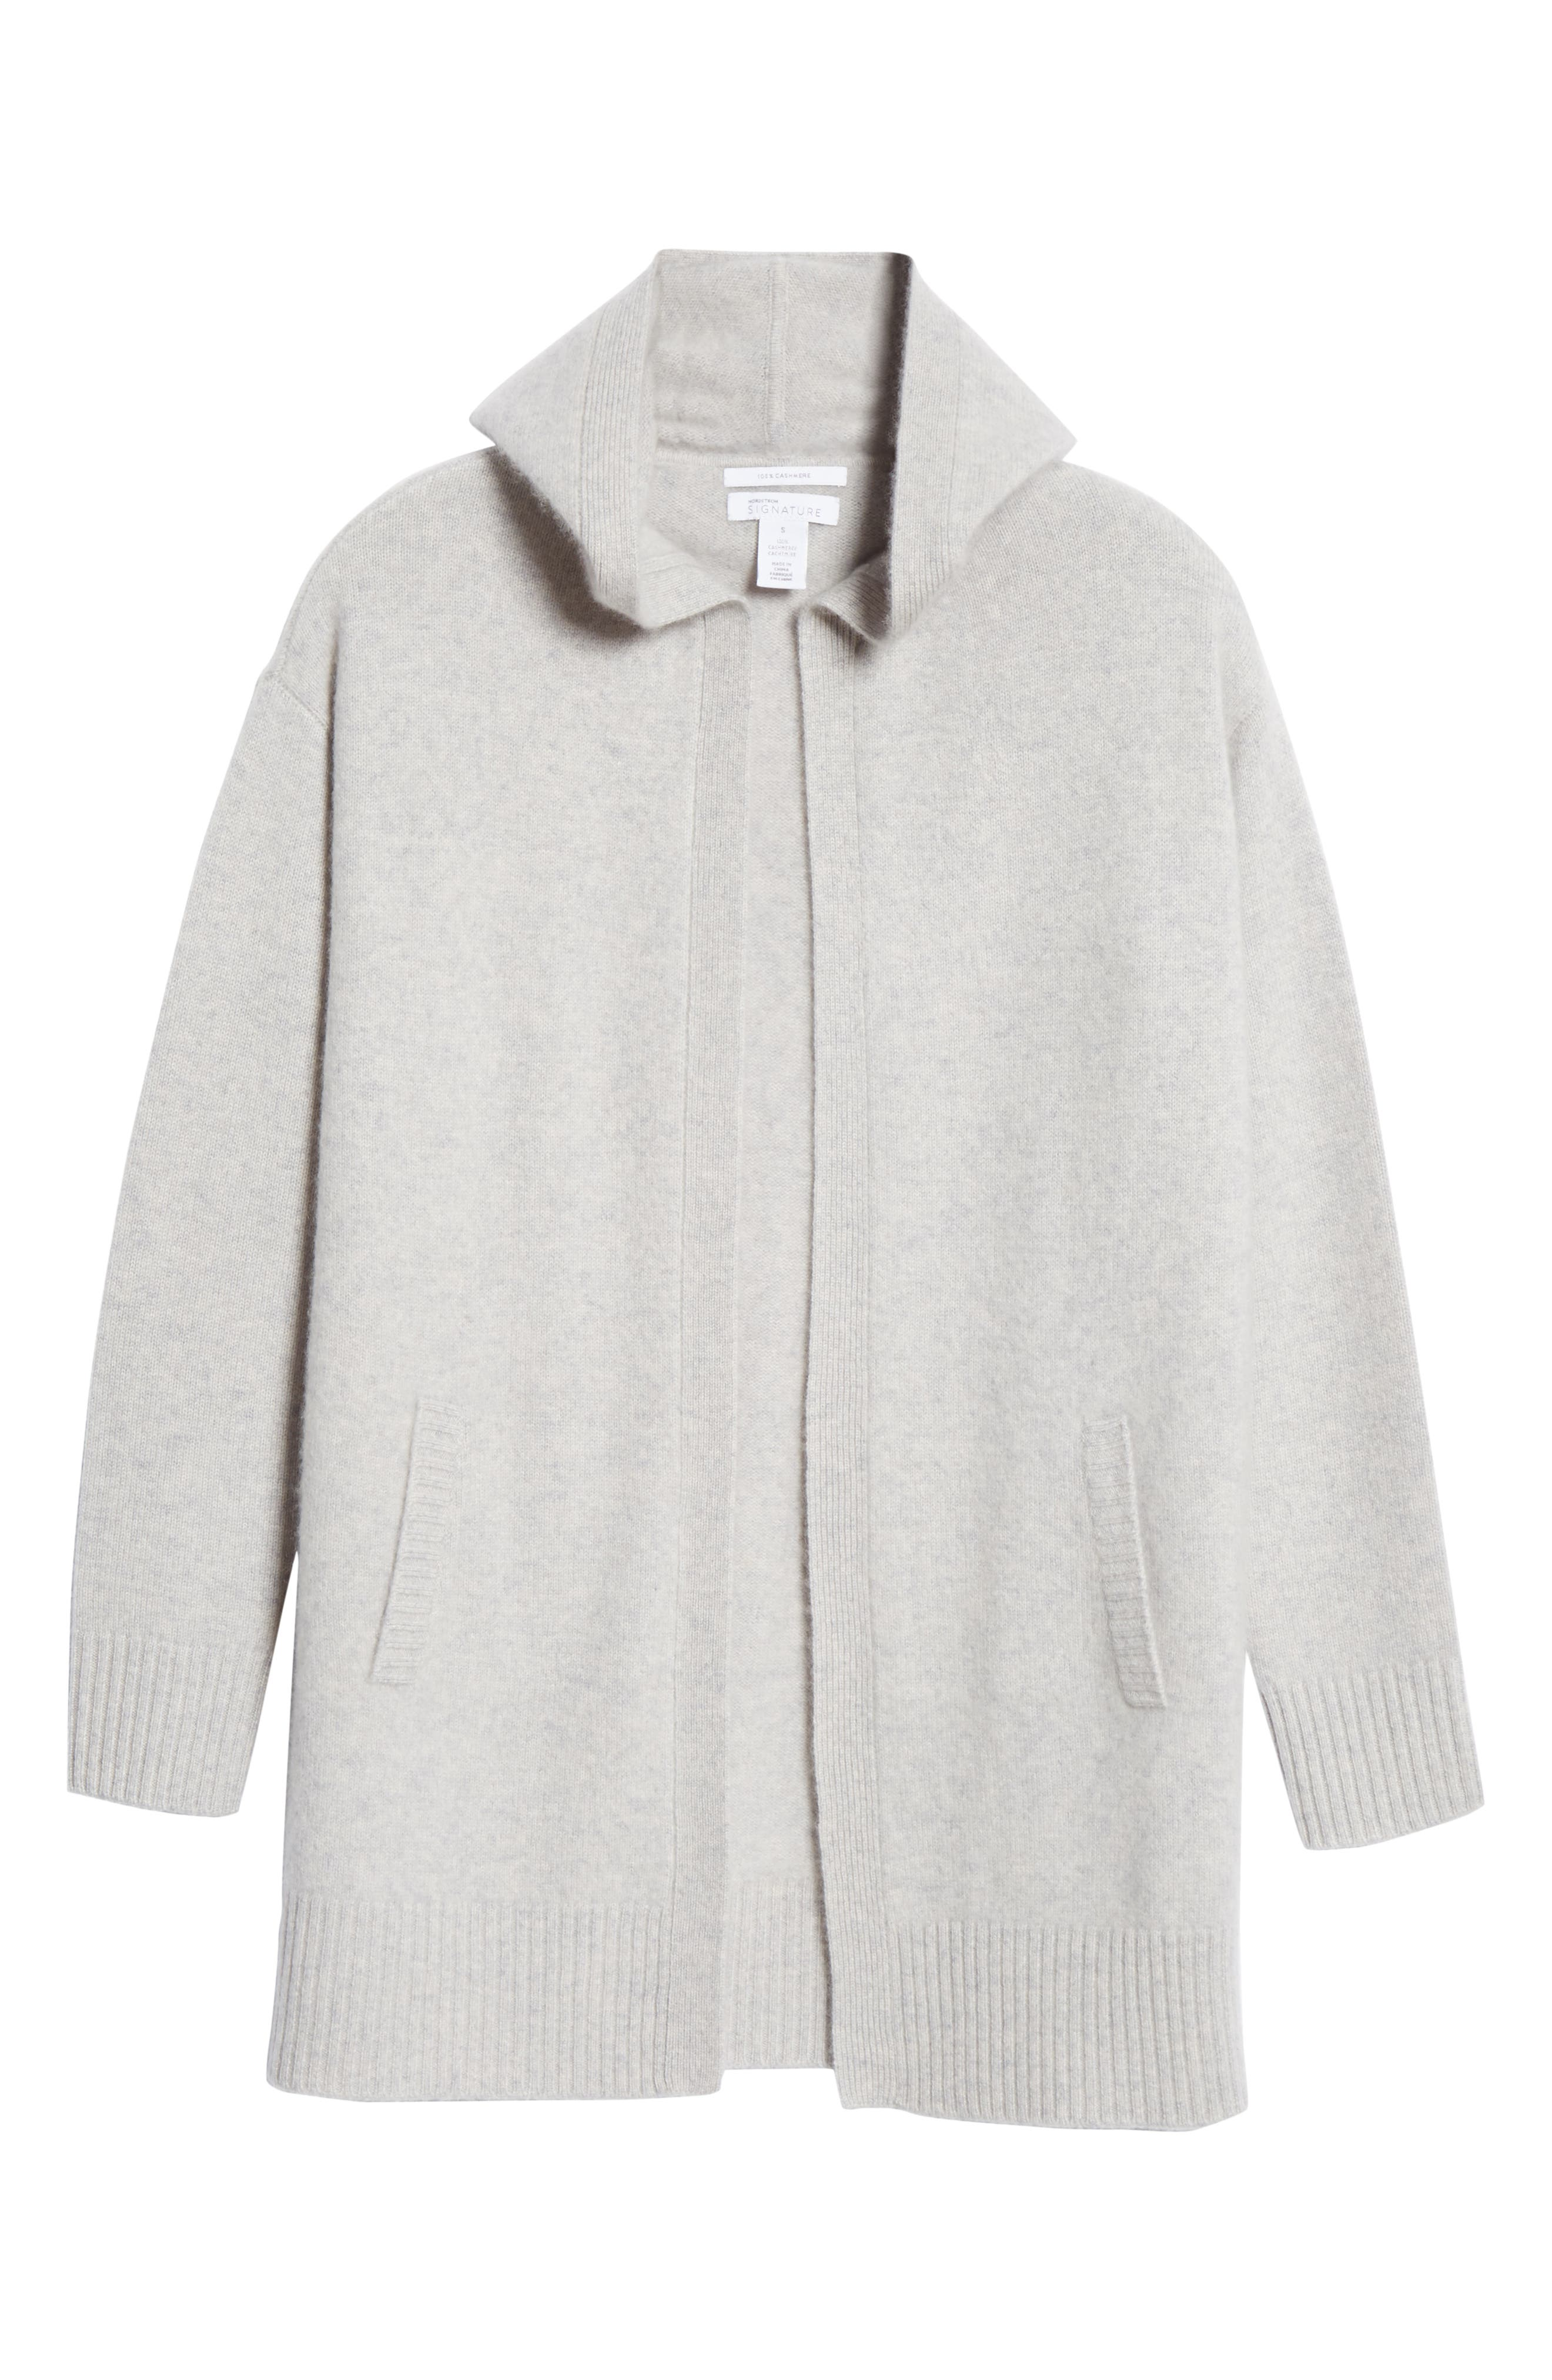 NORDSTROM SIGNATURE,                             Hooded Boiled Cashmere Cardigan,                             Alternate thumbnail 6, color,                             GREY CLAY HEATHER